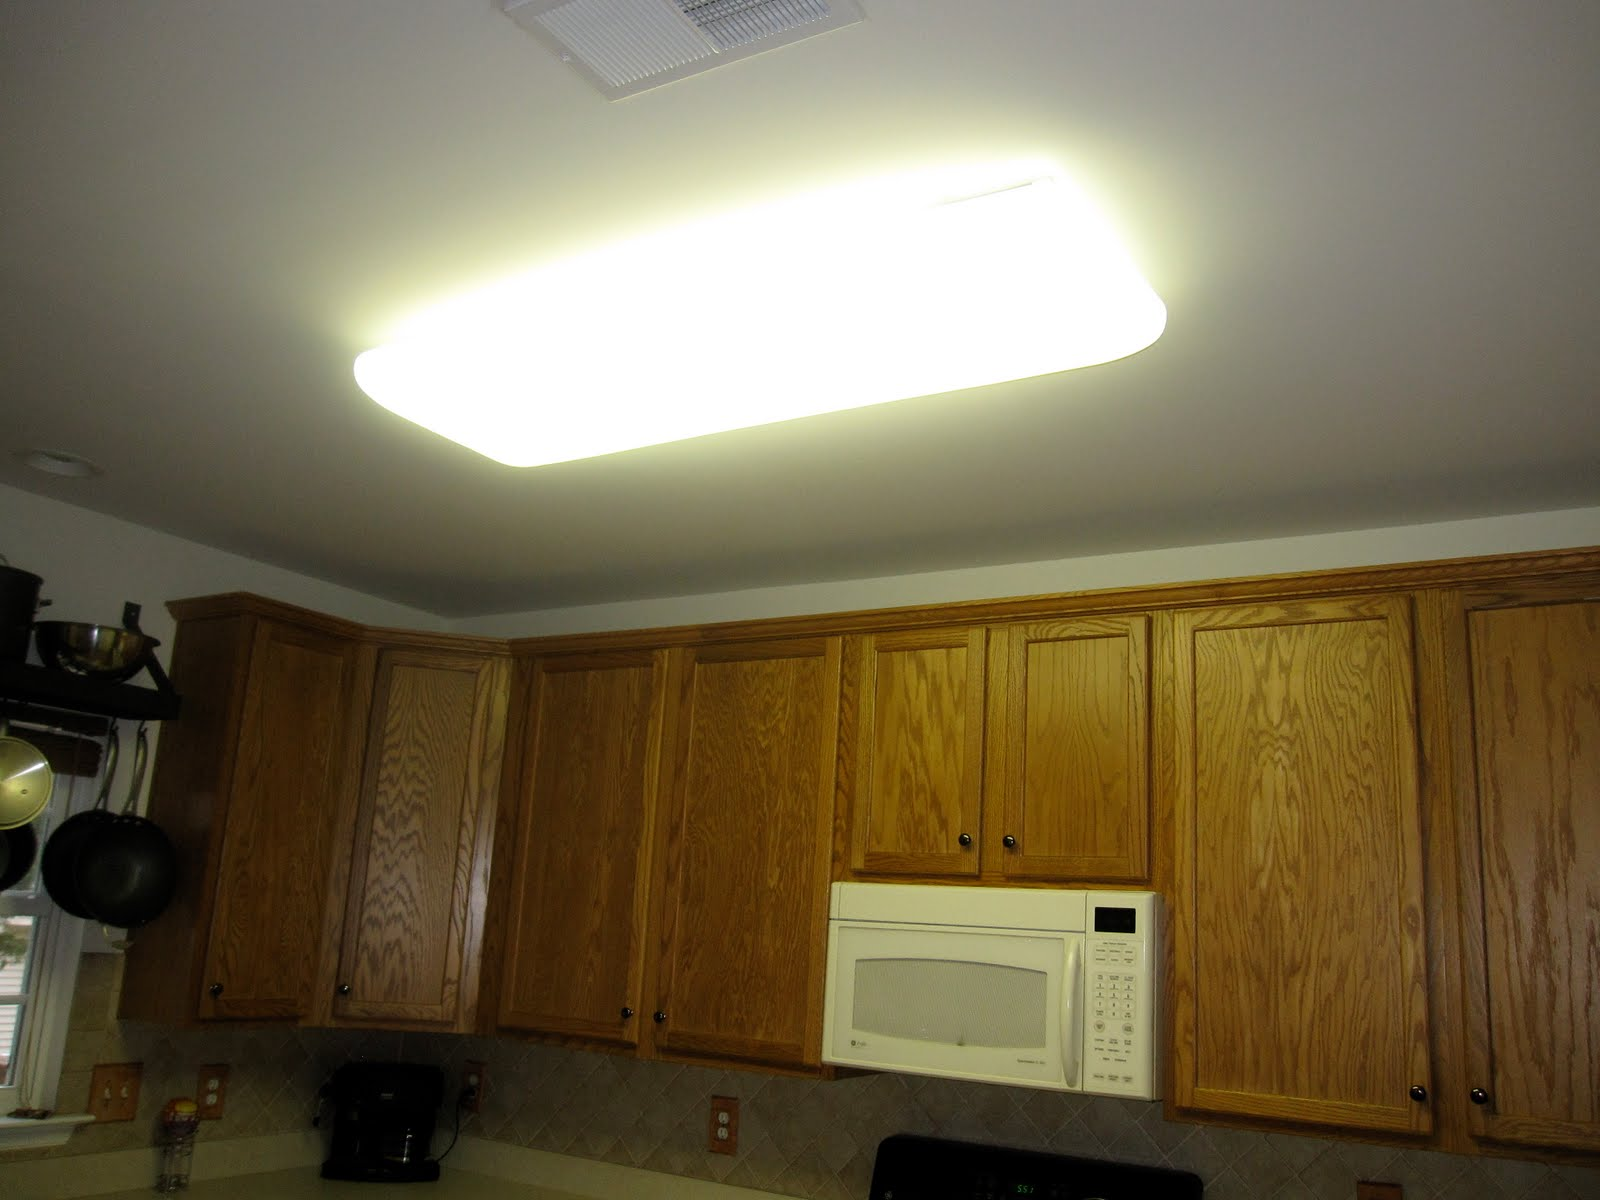 Before The Bulky Fluorescent Light Fixture Looked Like It Was Meant